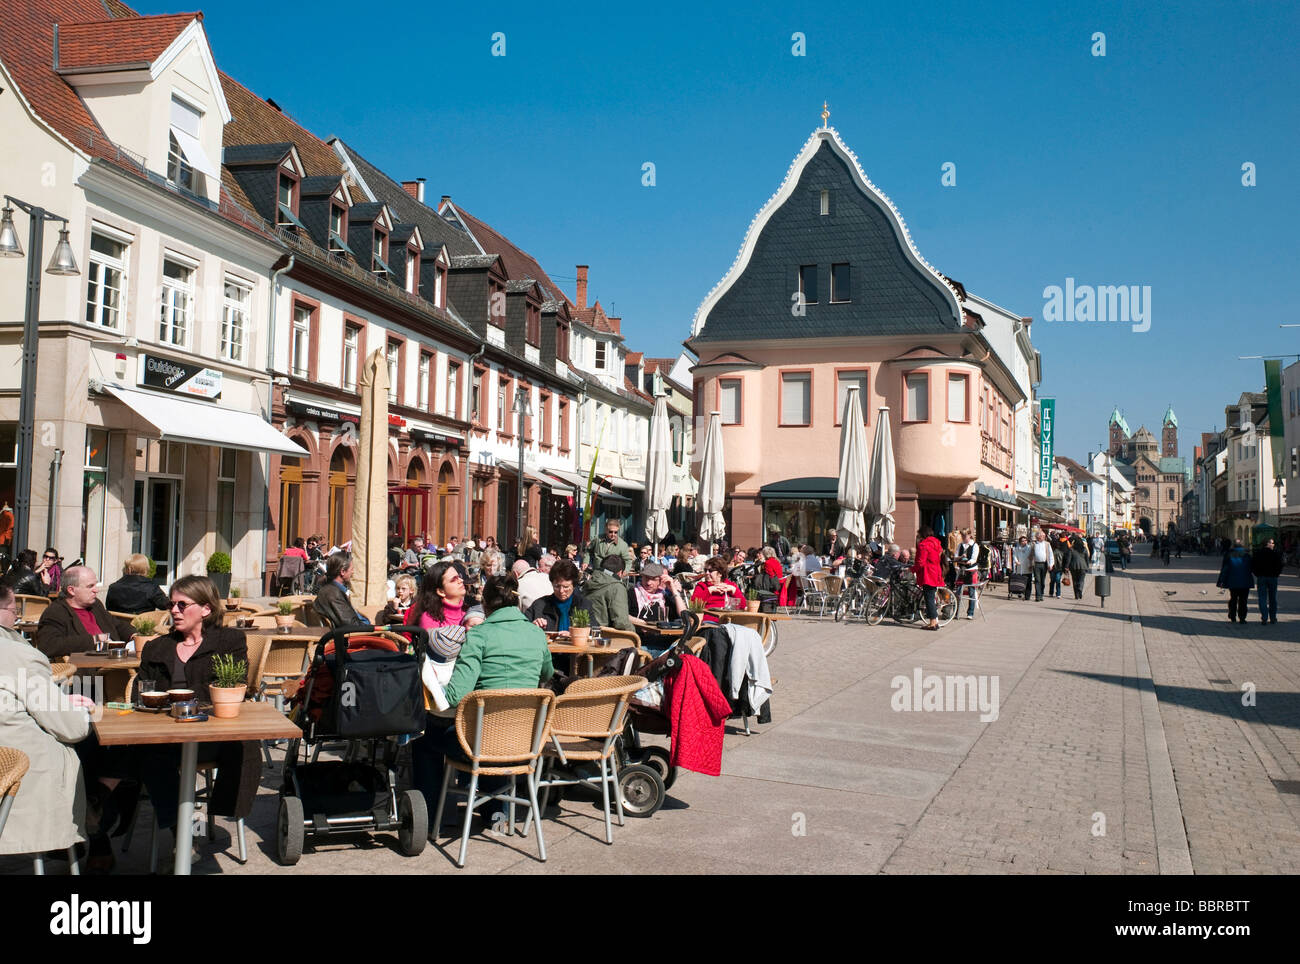 Pedestrian zone in front of Speyer Cathedral, Maximilian street, Speyer, Rhineland-Palatinate, Germany, Europe Stock Photo